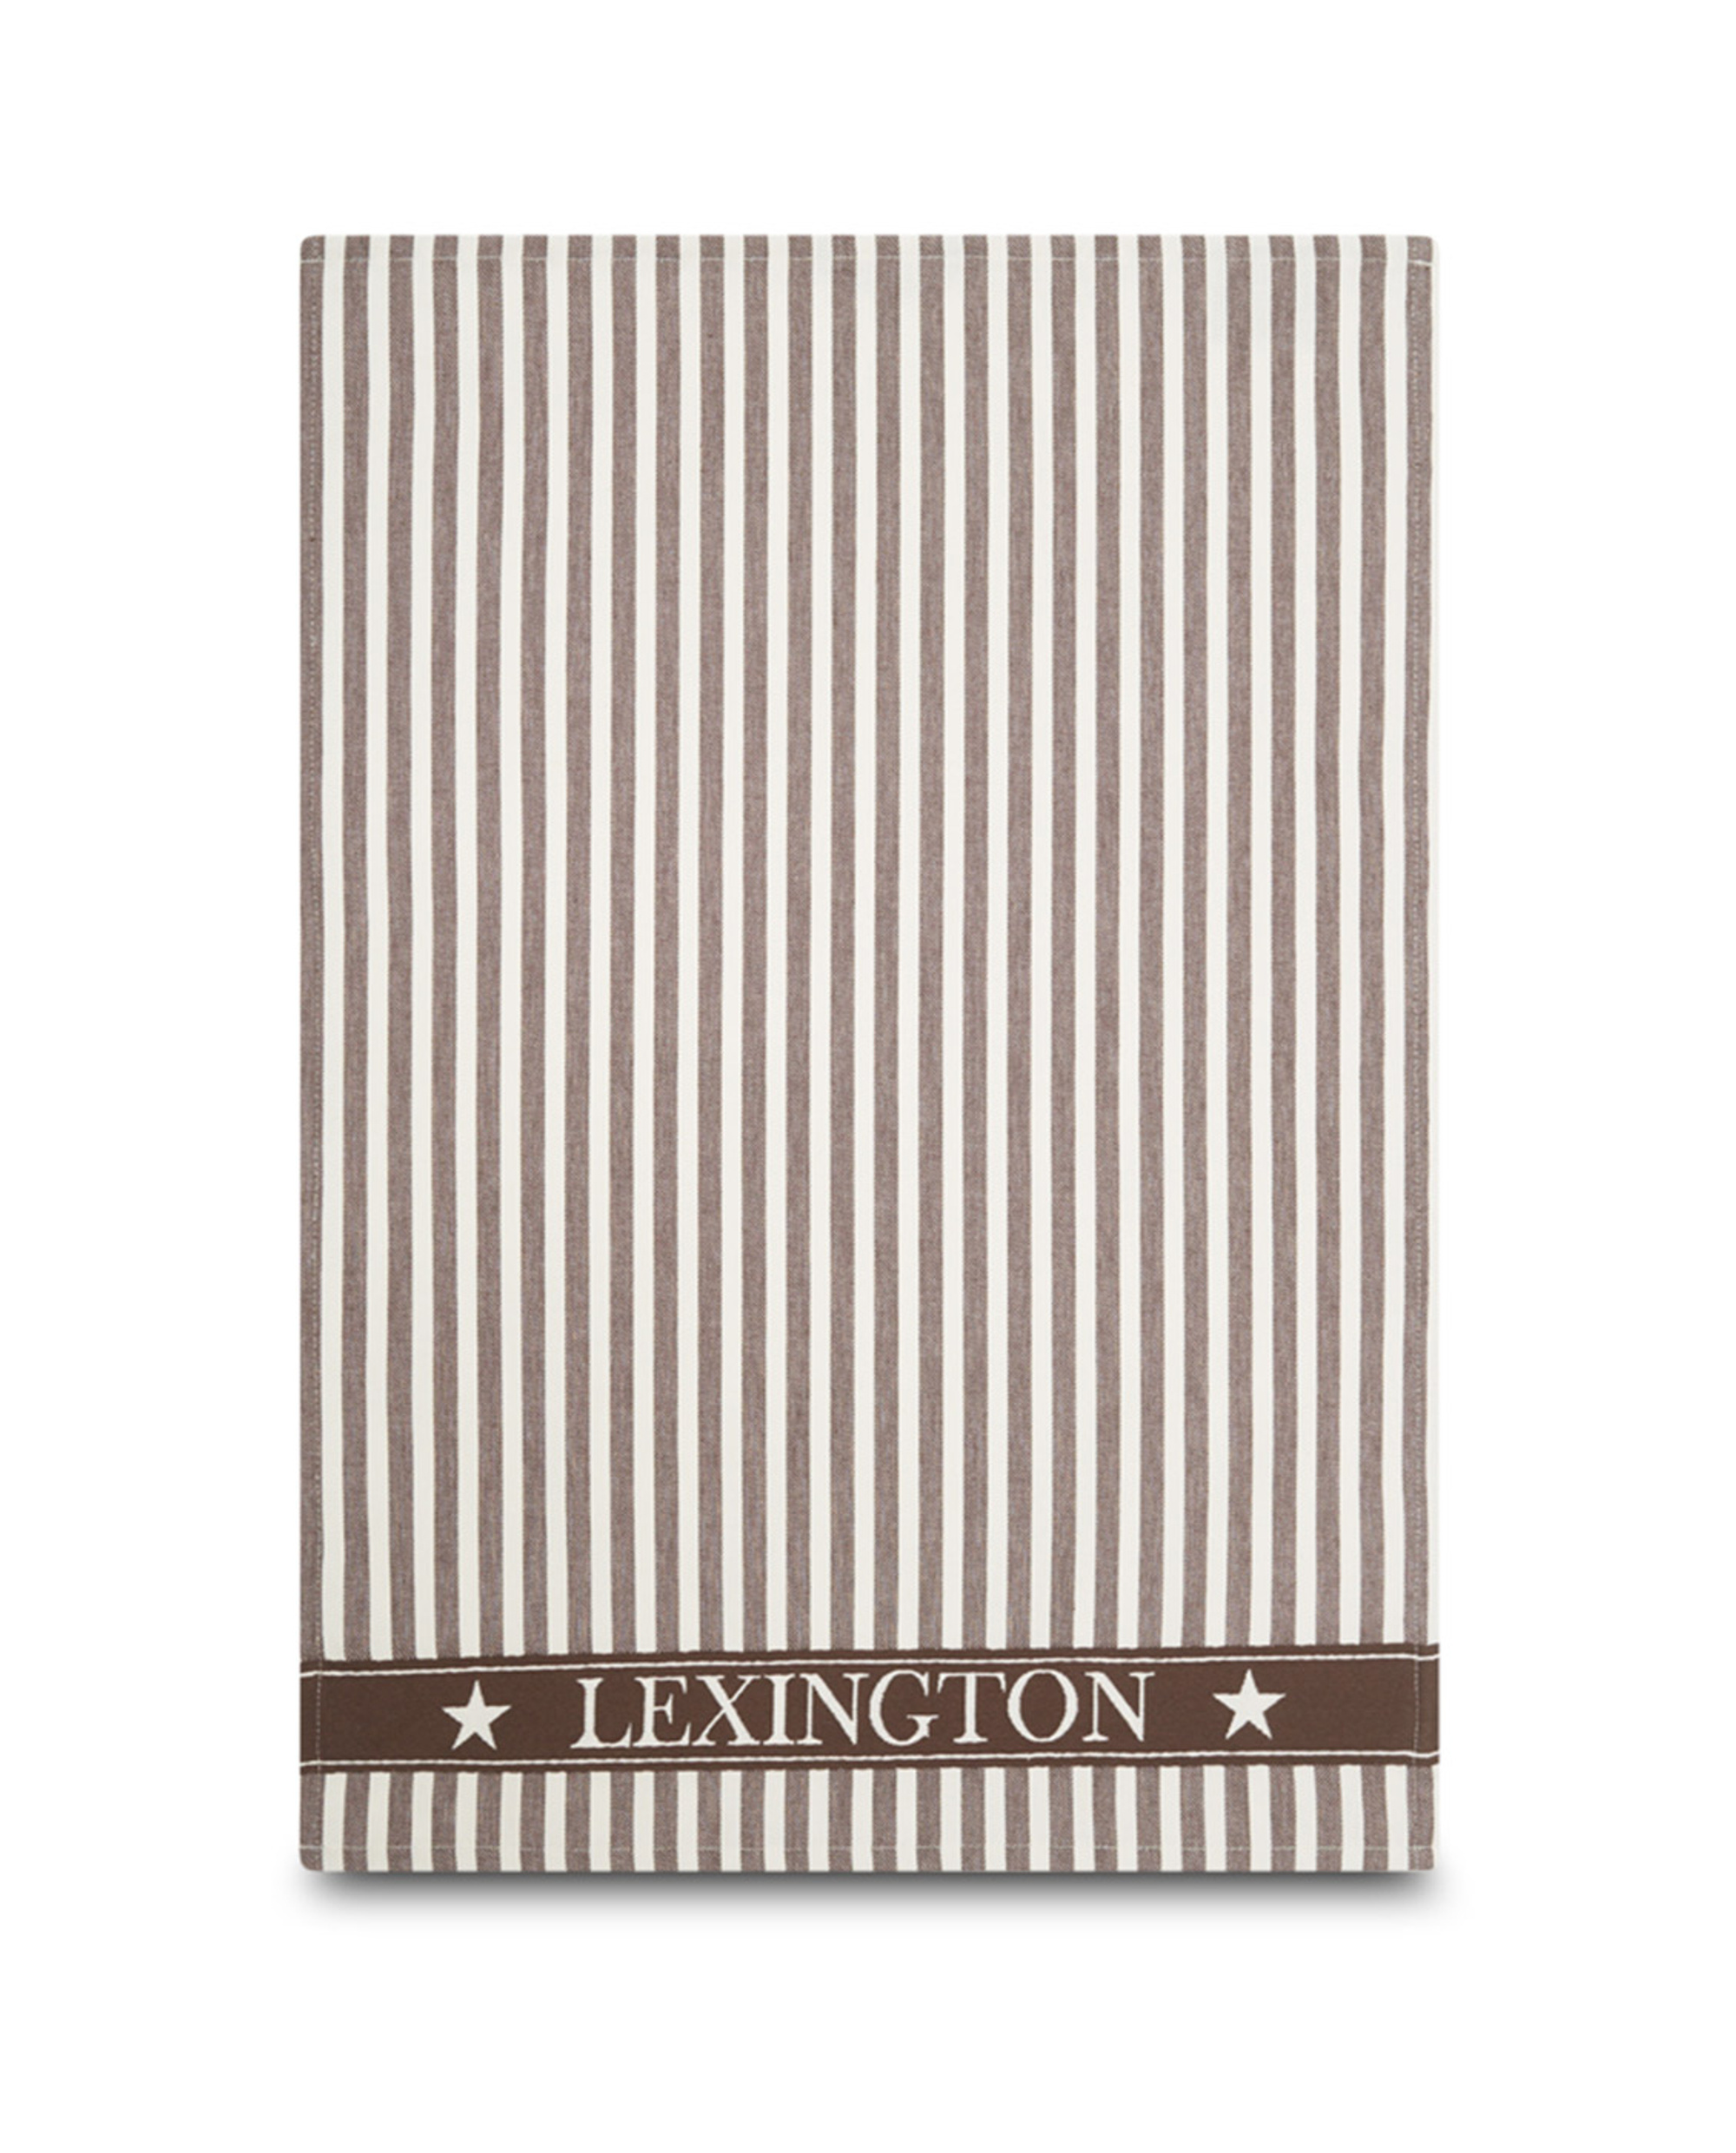 Kökshandduk, Lexington, Striped Classic Kitchen Towel, brown white